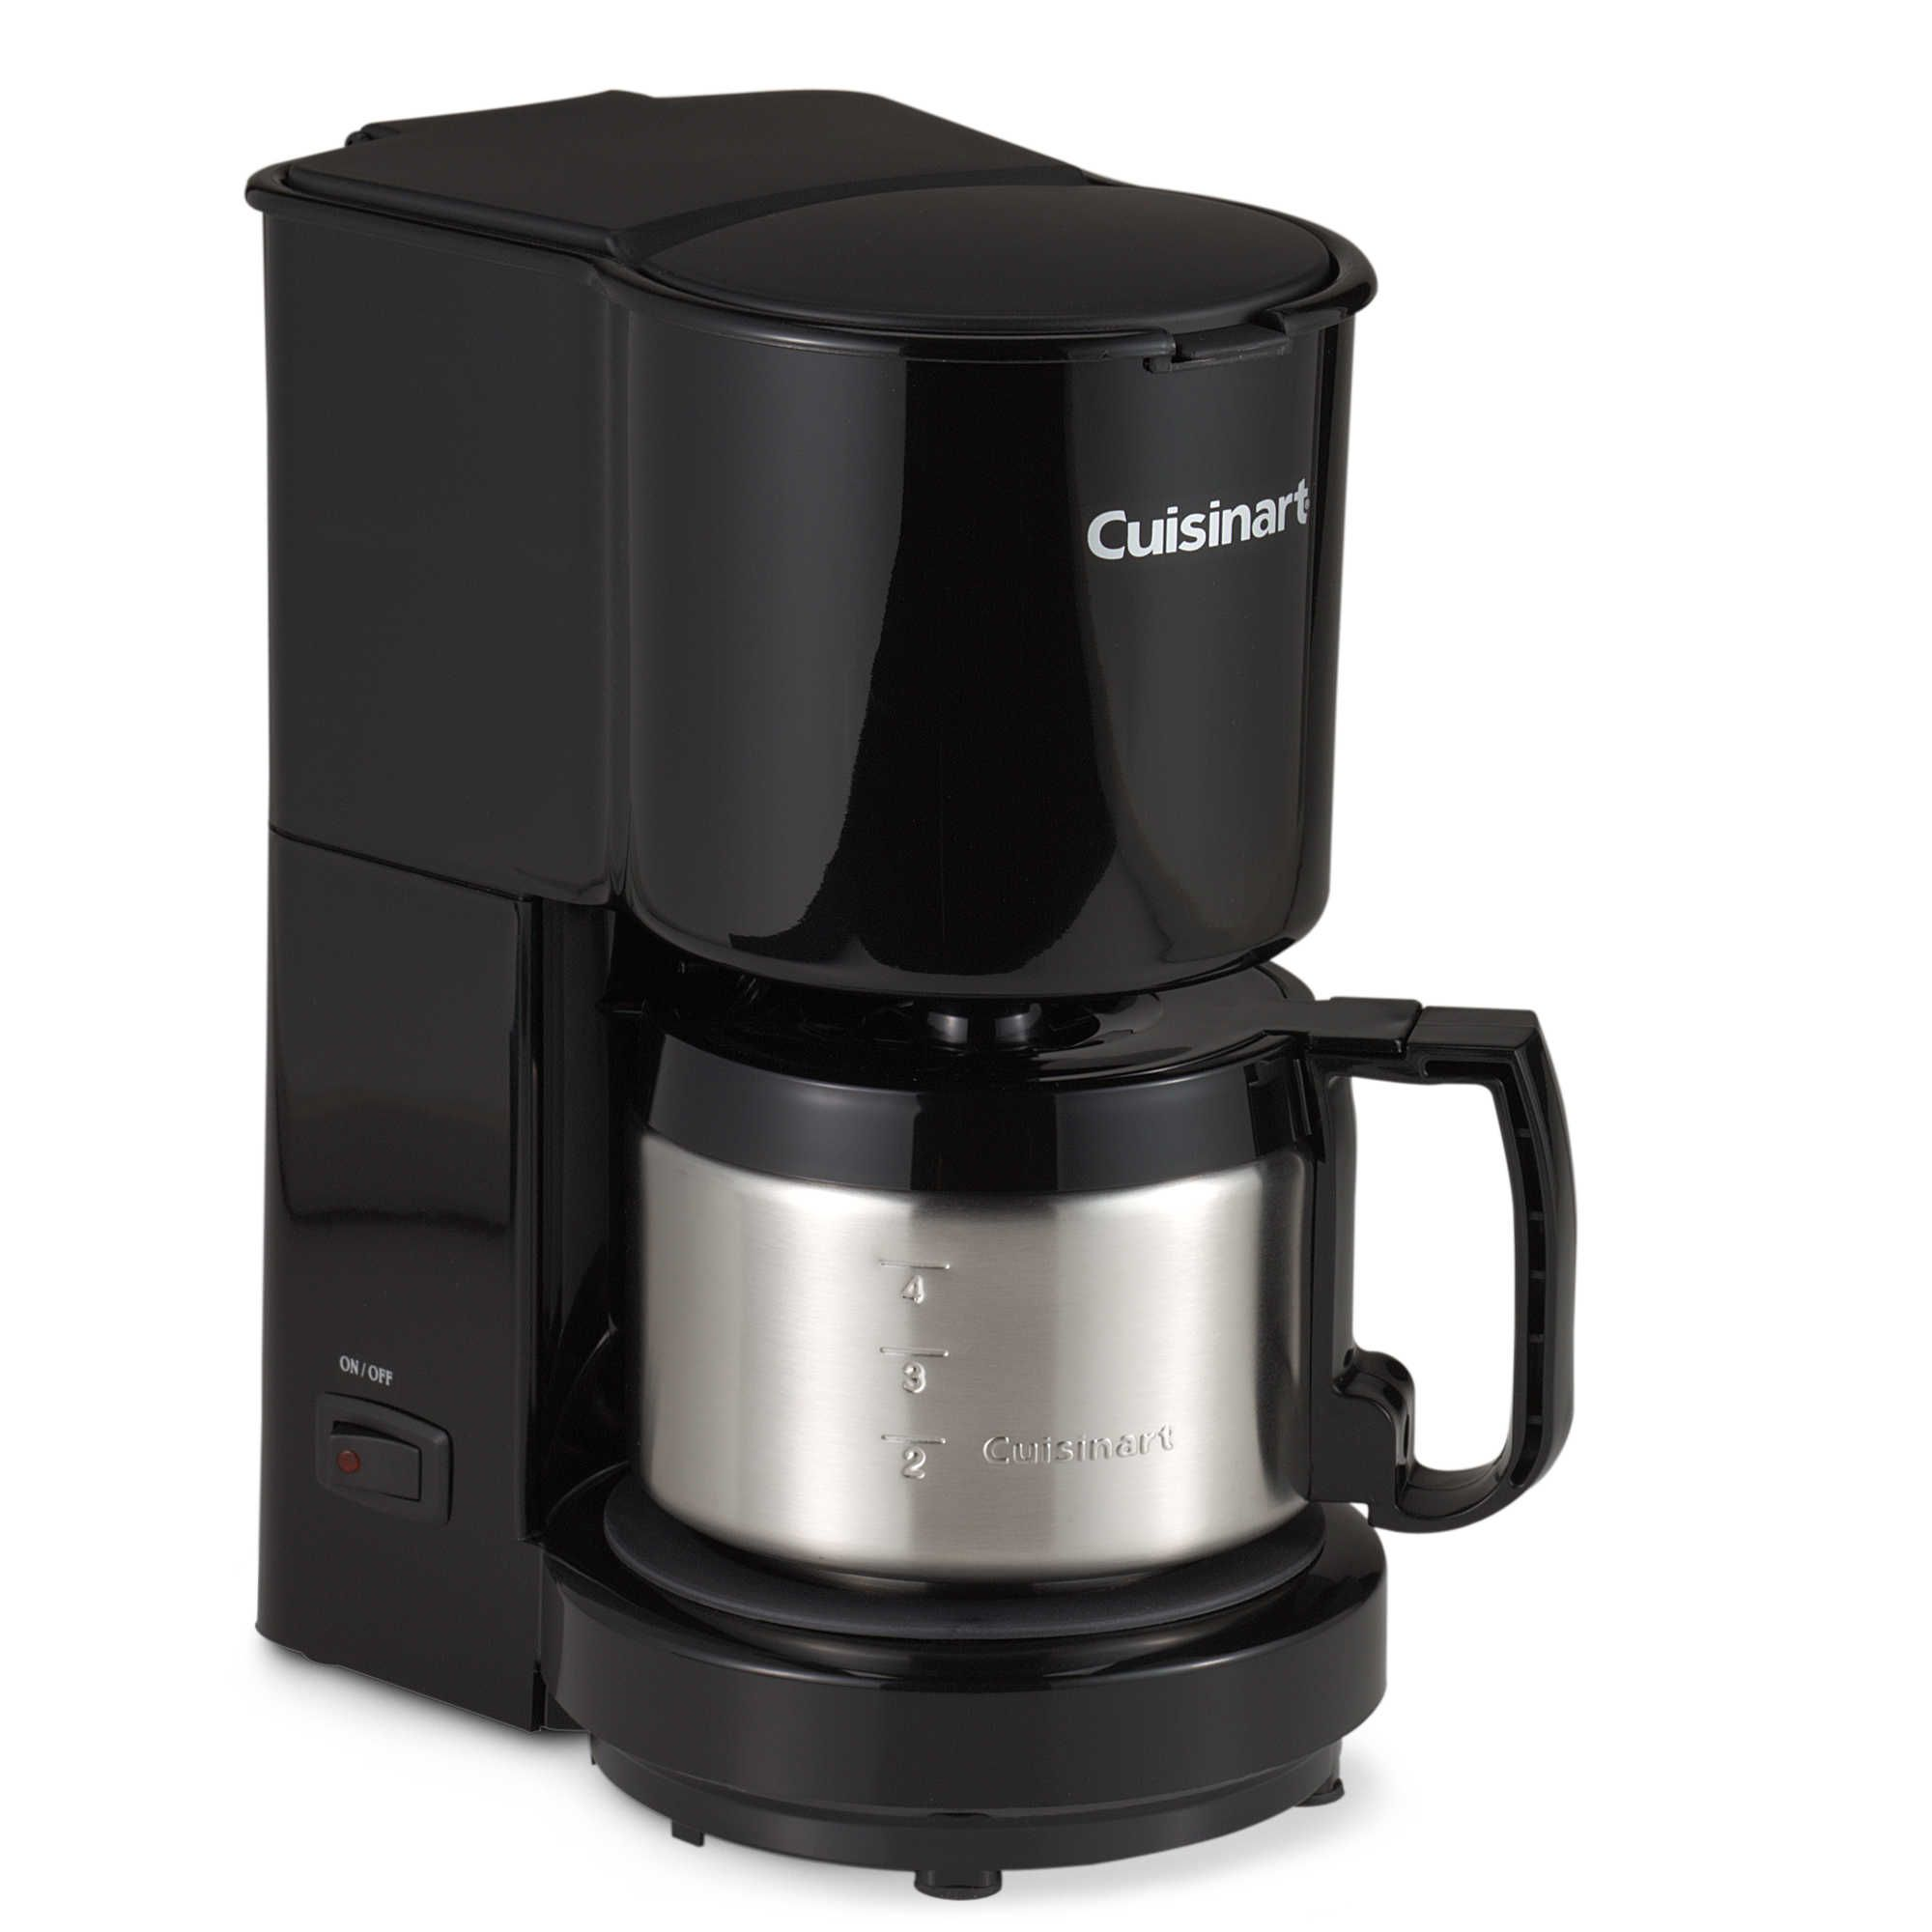 Cuisinart 4 Cup Coffee Maker With Stainless Steel Carafe Bed Bath Beyond Camping Coffee Maker 4 Cup Coffee Maker Coffee Maker